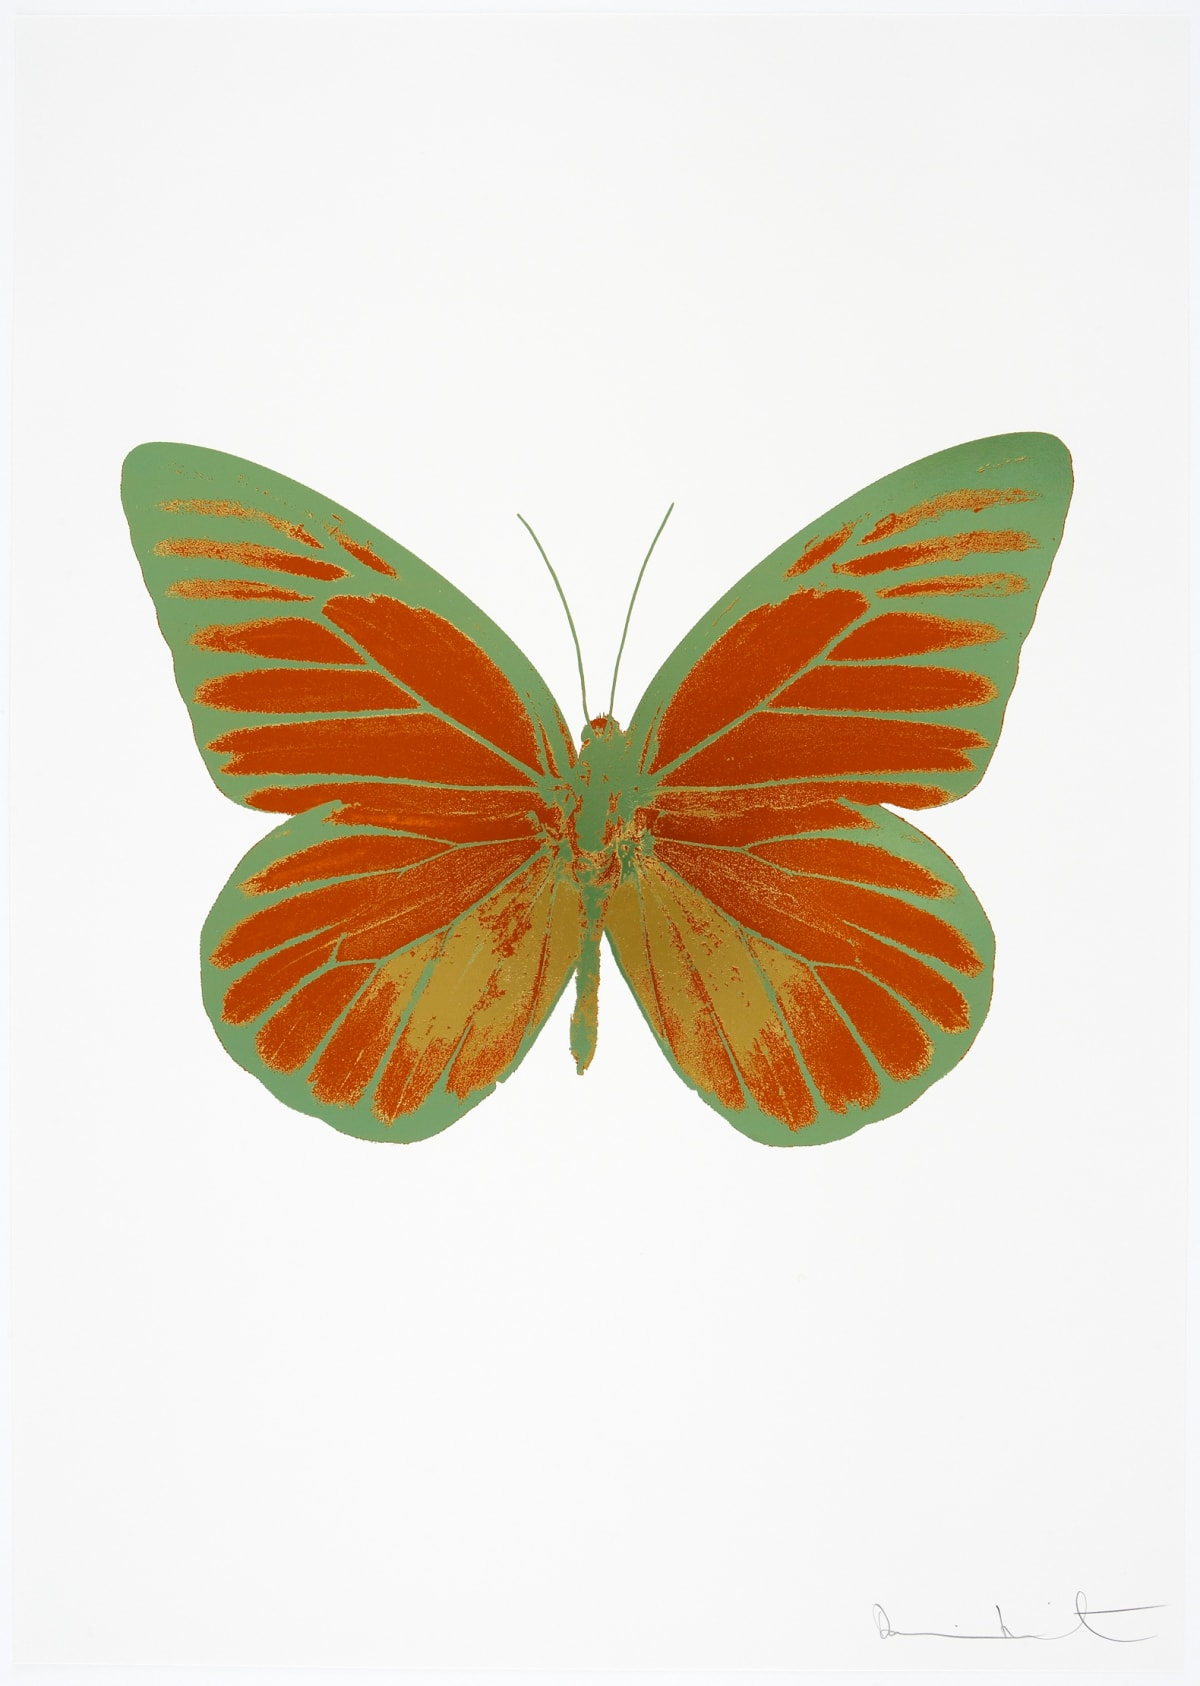 Damien Hirst The Souls I - Prairie Copper/Oriental Gold/Leaf Green, 2010 3 colour foil block on 300gsm Arches 88 archival paper. Signed and numbered. Published by Paul Stolper and Other Criteria 72 x 51cm OC7747 / 659-10 Edition of 15